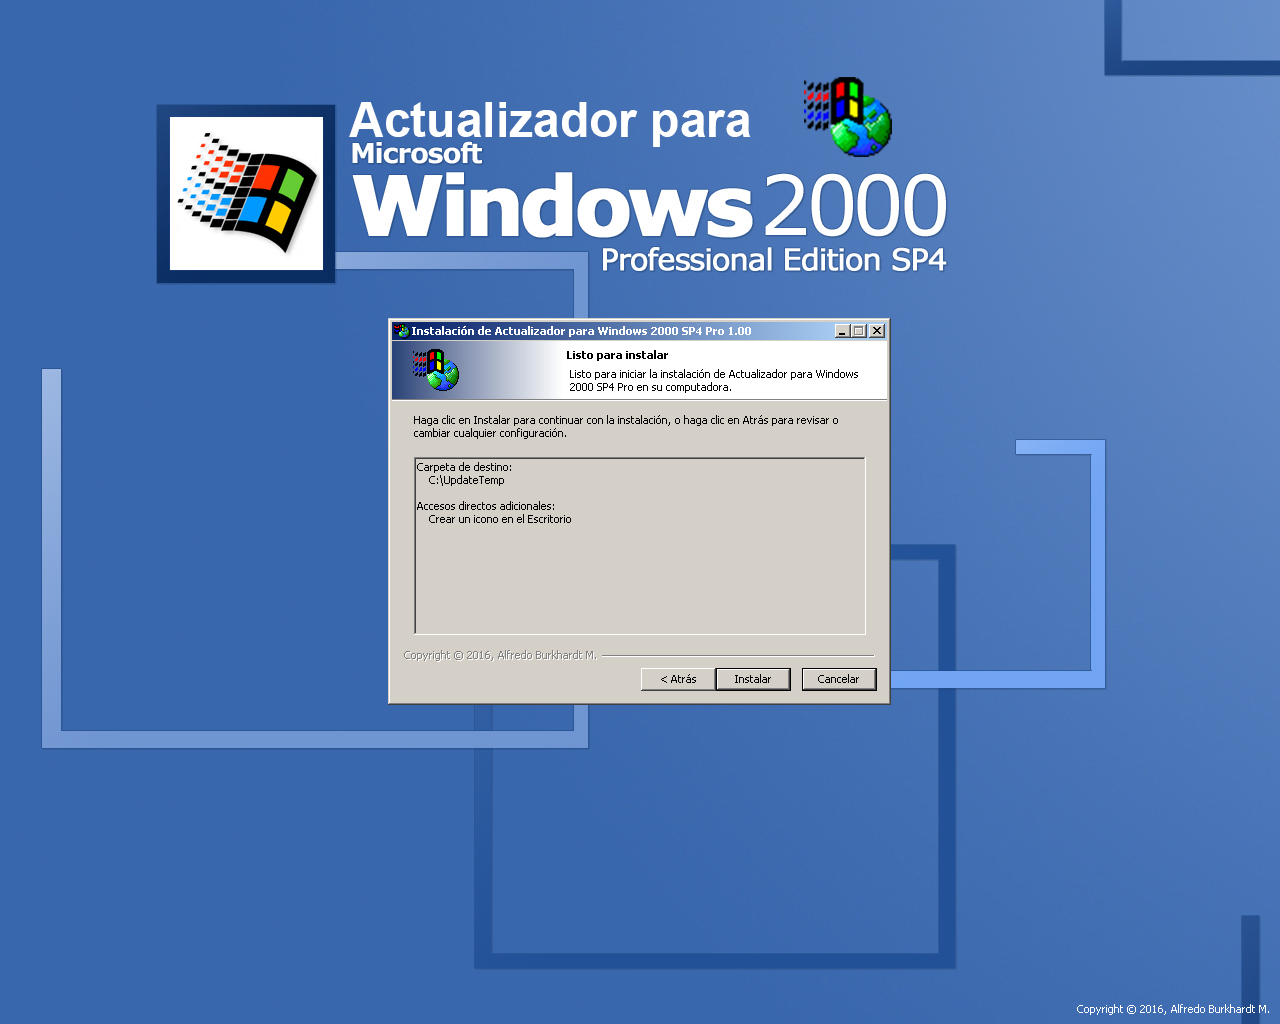 Actualizador automático de Windows 2000